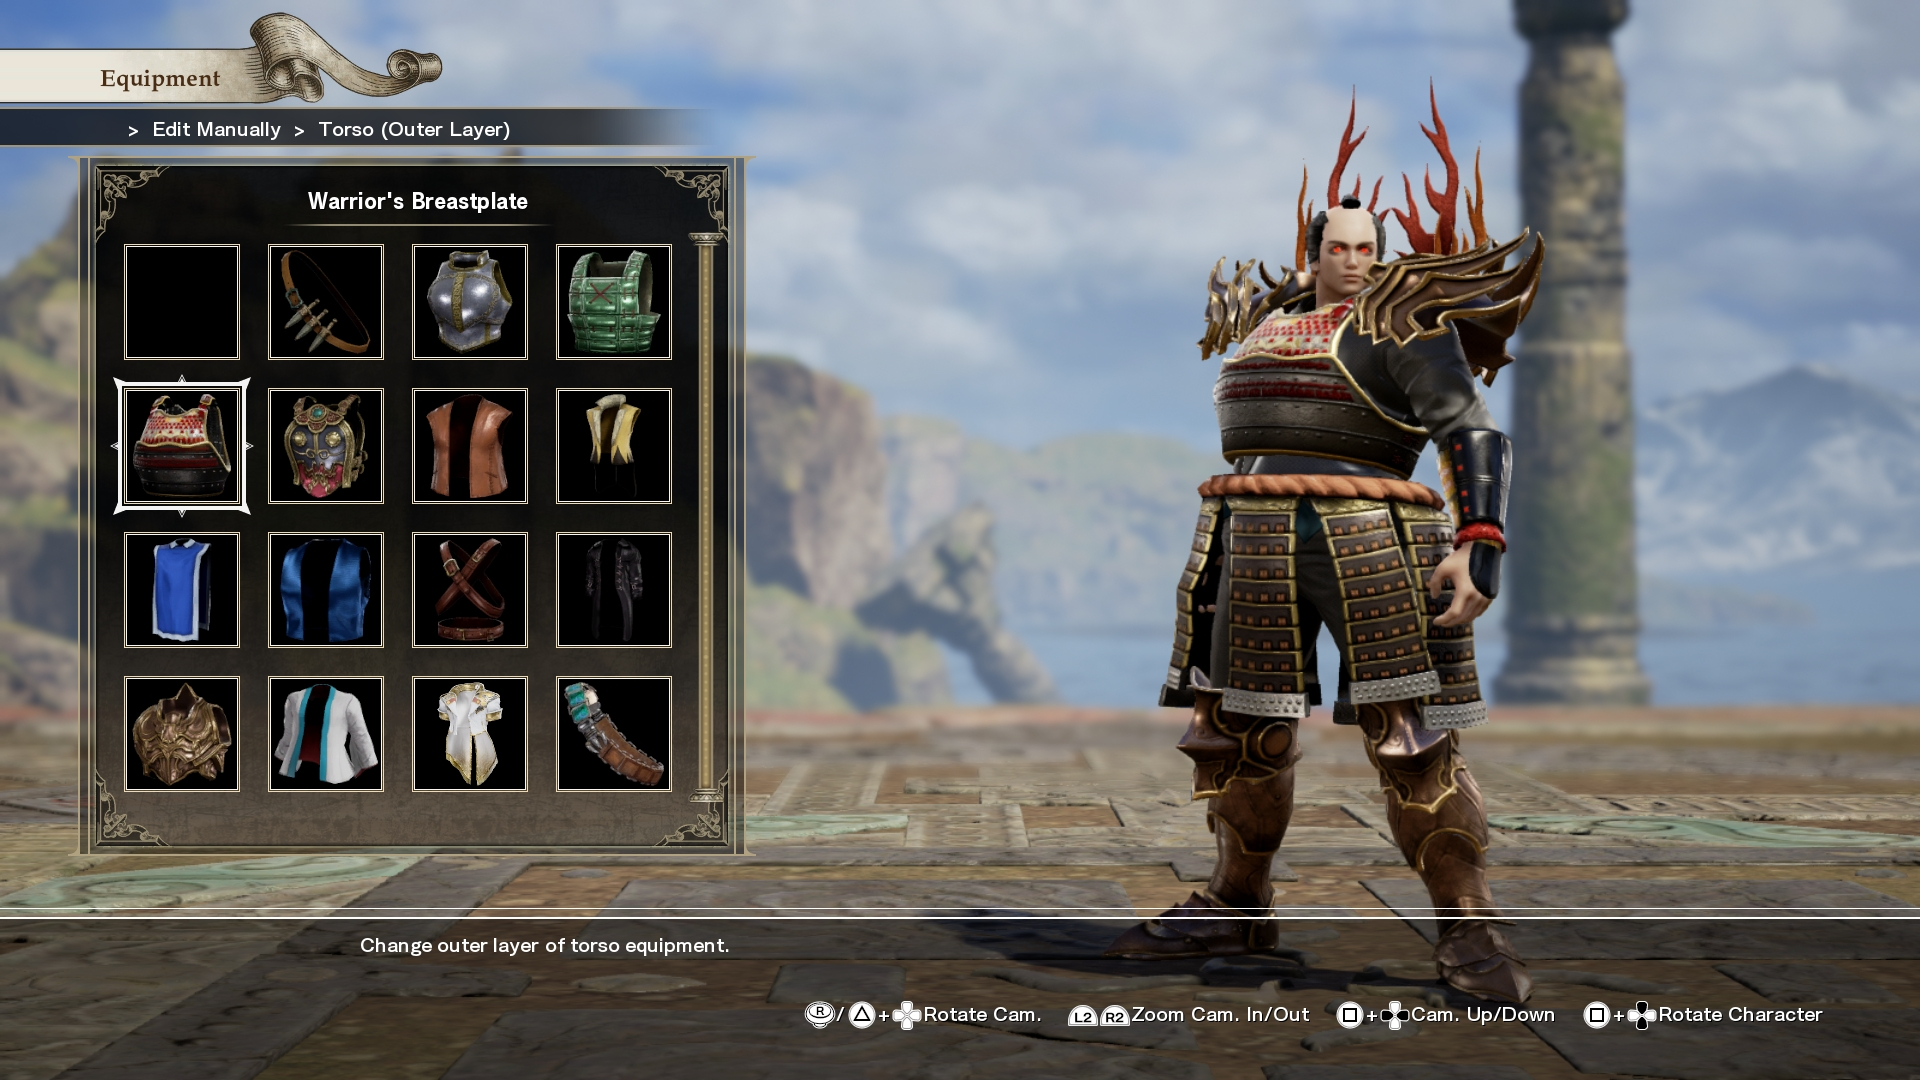 Soulcalibur VI review: A grueling fighter that tests your wits